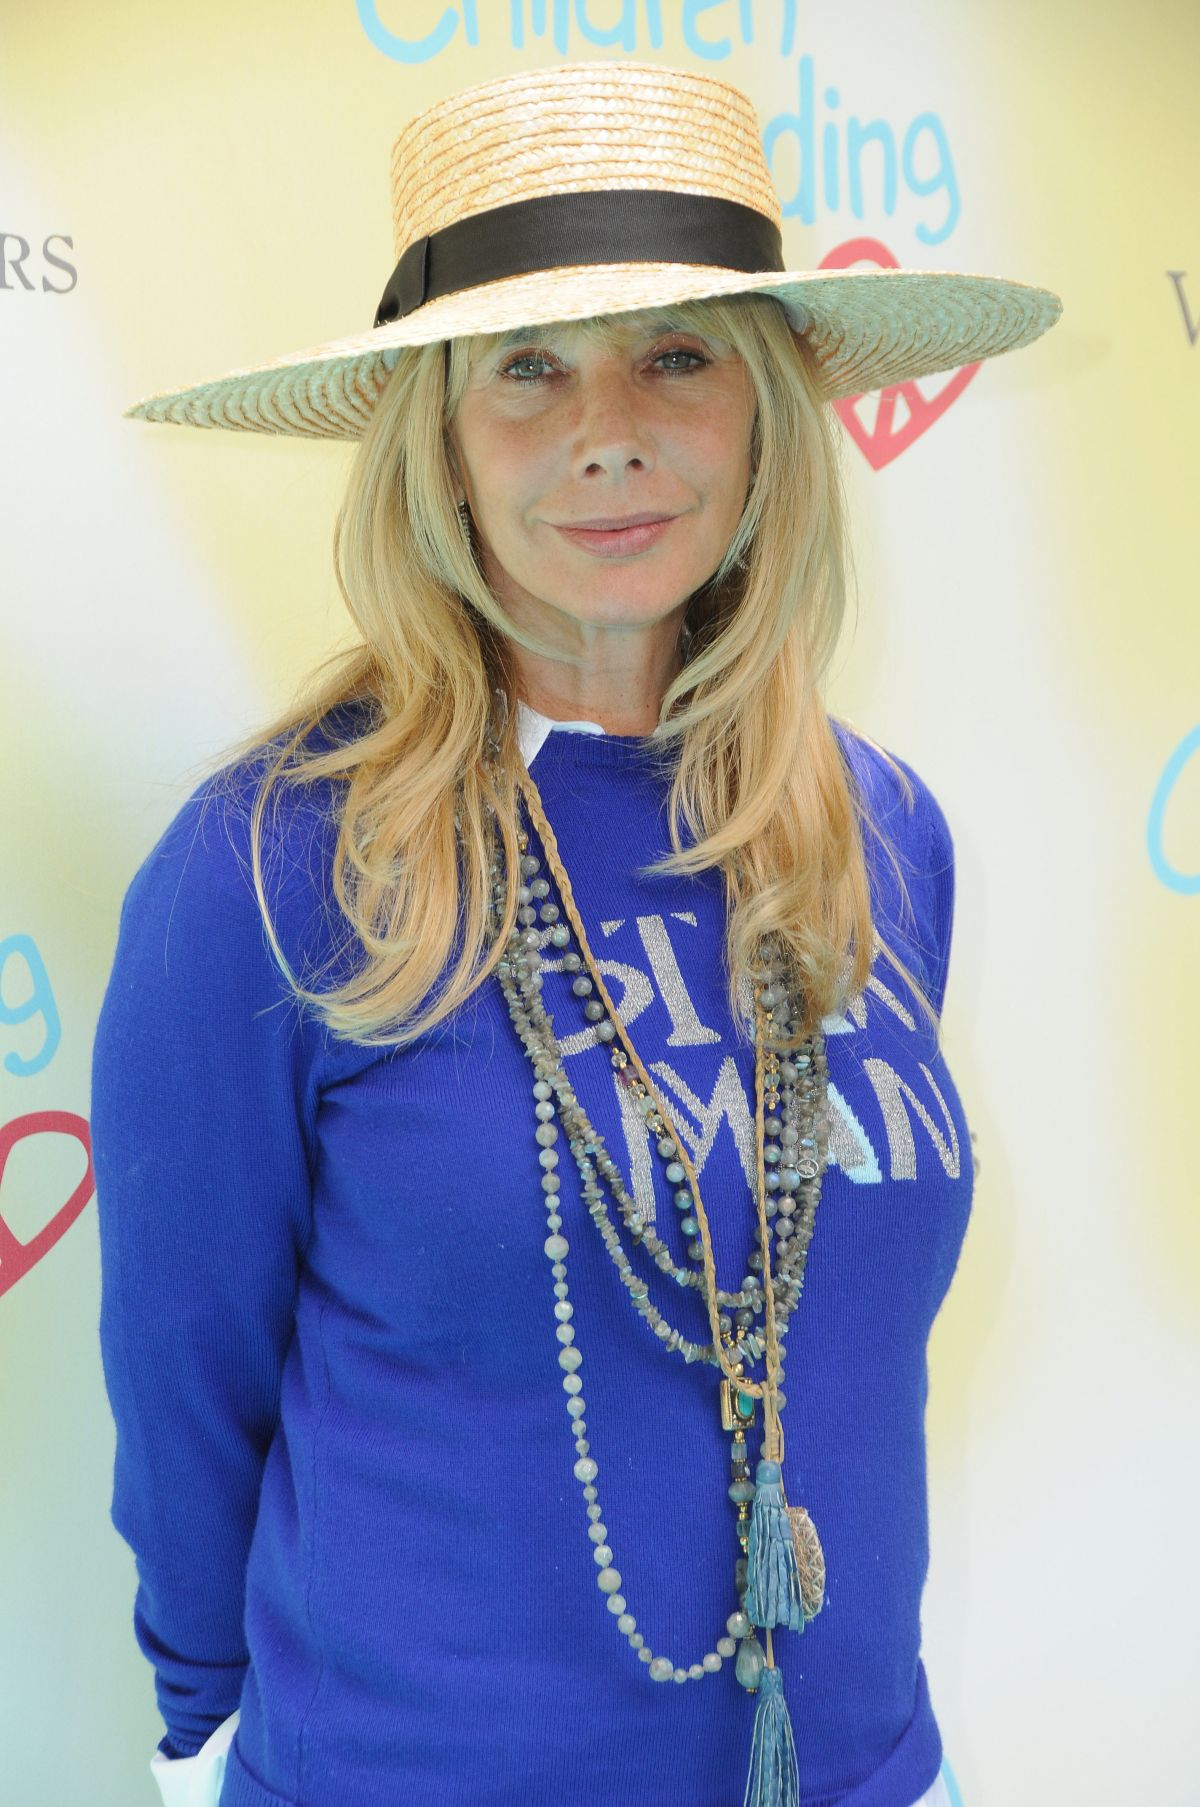 ROSANNA ARQUETTE at Children Mending Hearts 9th annual Empathy Rocks in Los Angeles 06/11/2017